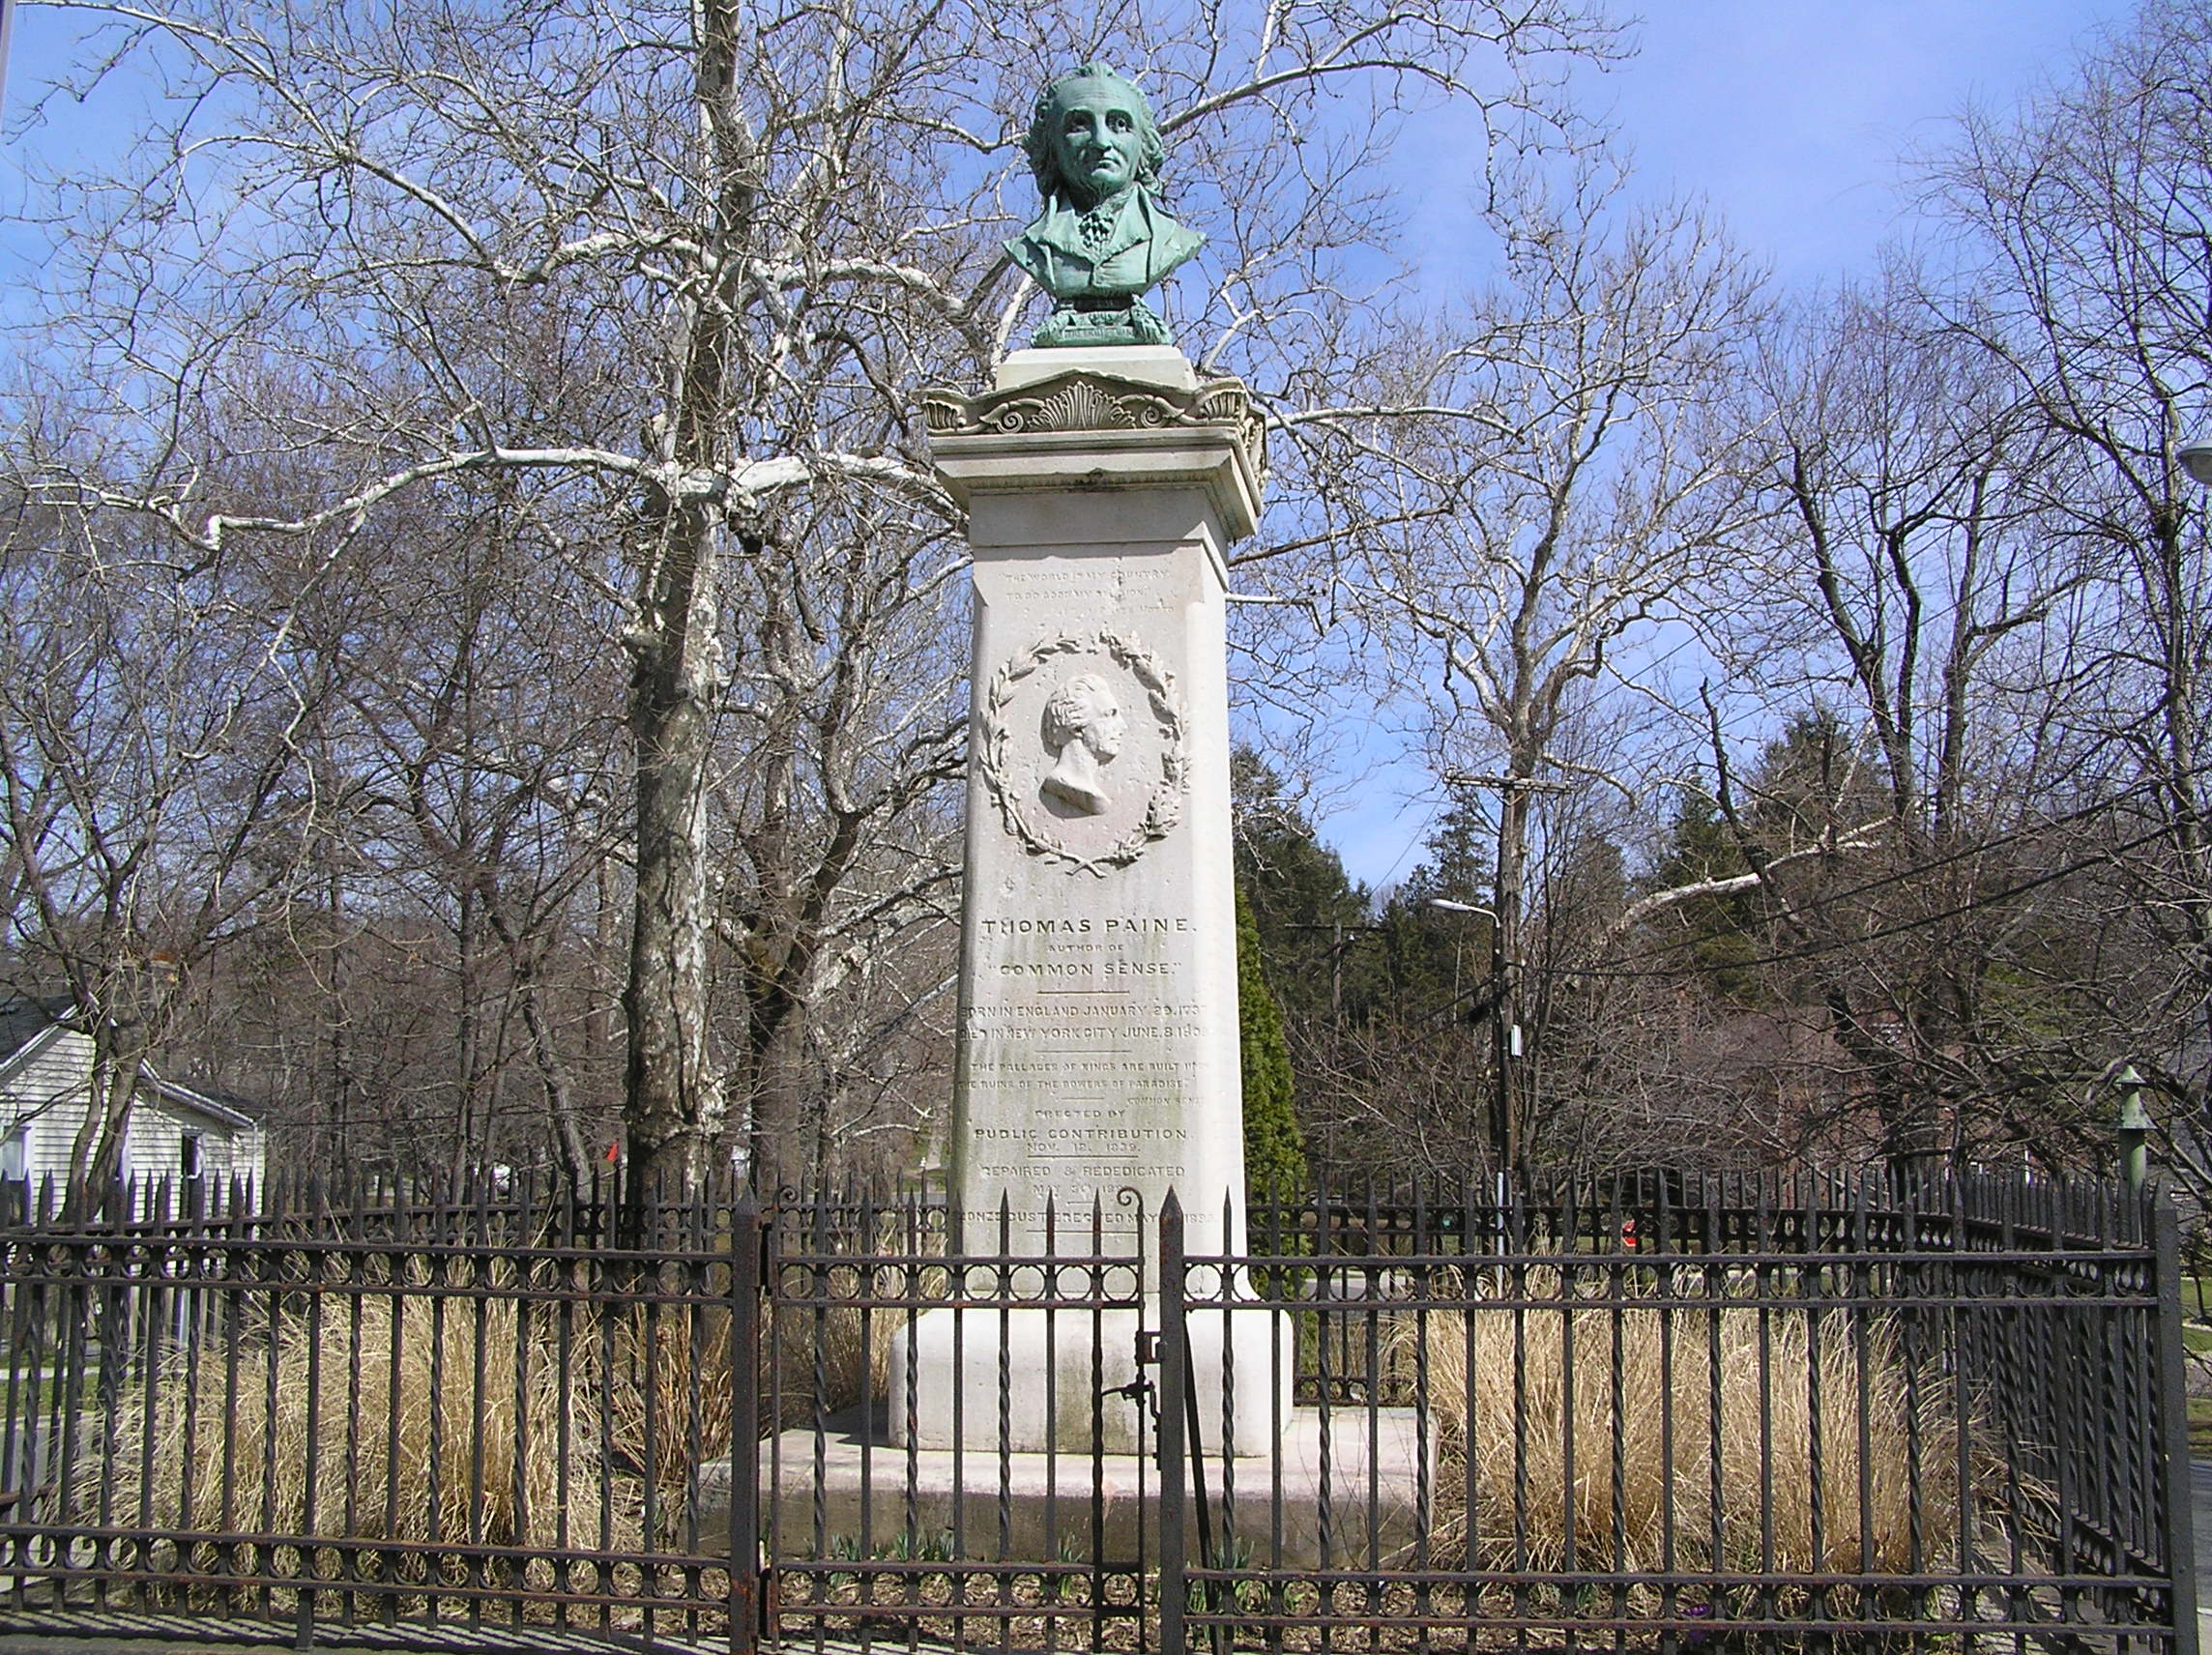 Thomas Paine's monument on North Avenue in New Rochelle, New York. Image Source: Wikipedia